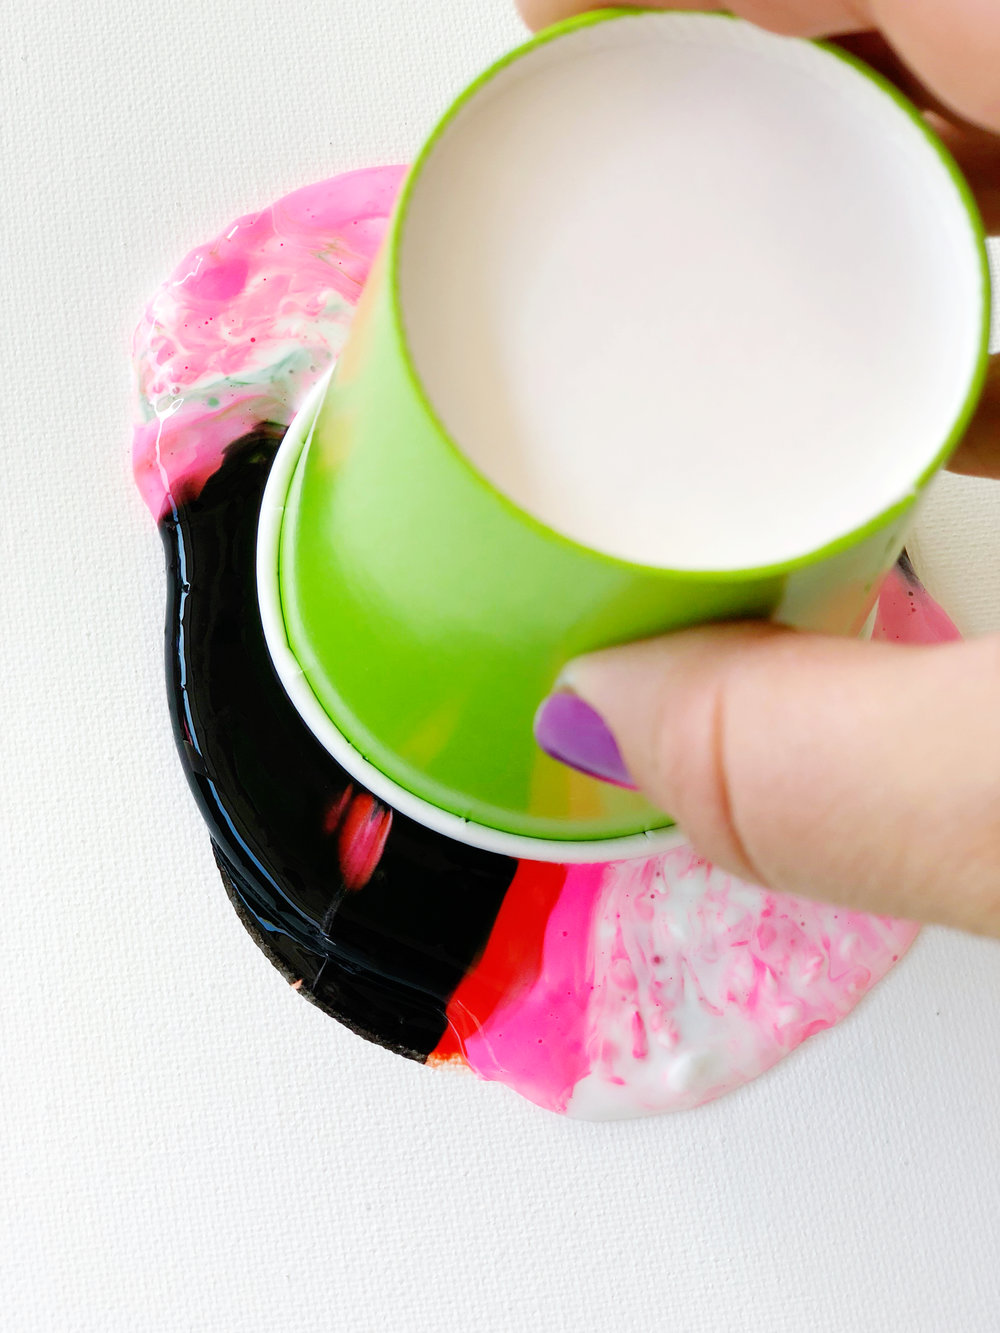 11. Next, slowly pick up the cup and very quickly release some of the paint onto the painting surface. Then place the cup back down tightly.